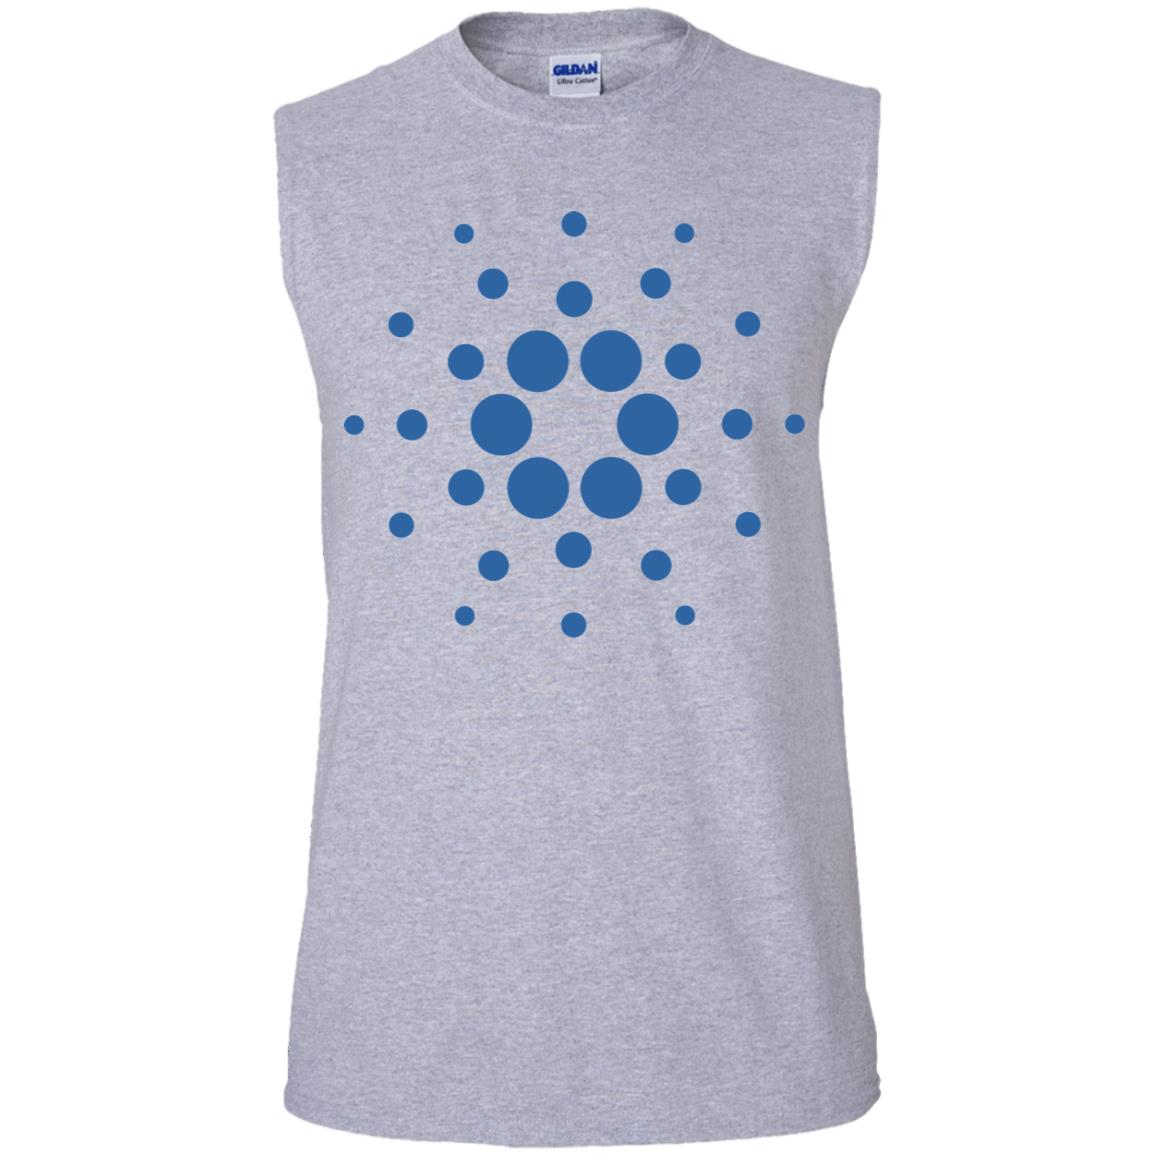 Cardano Men's Ultra Cotton Sleeveless T-Shirt